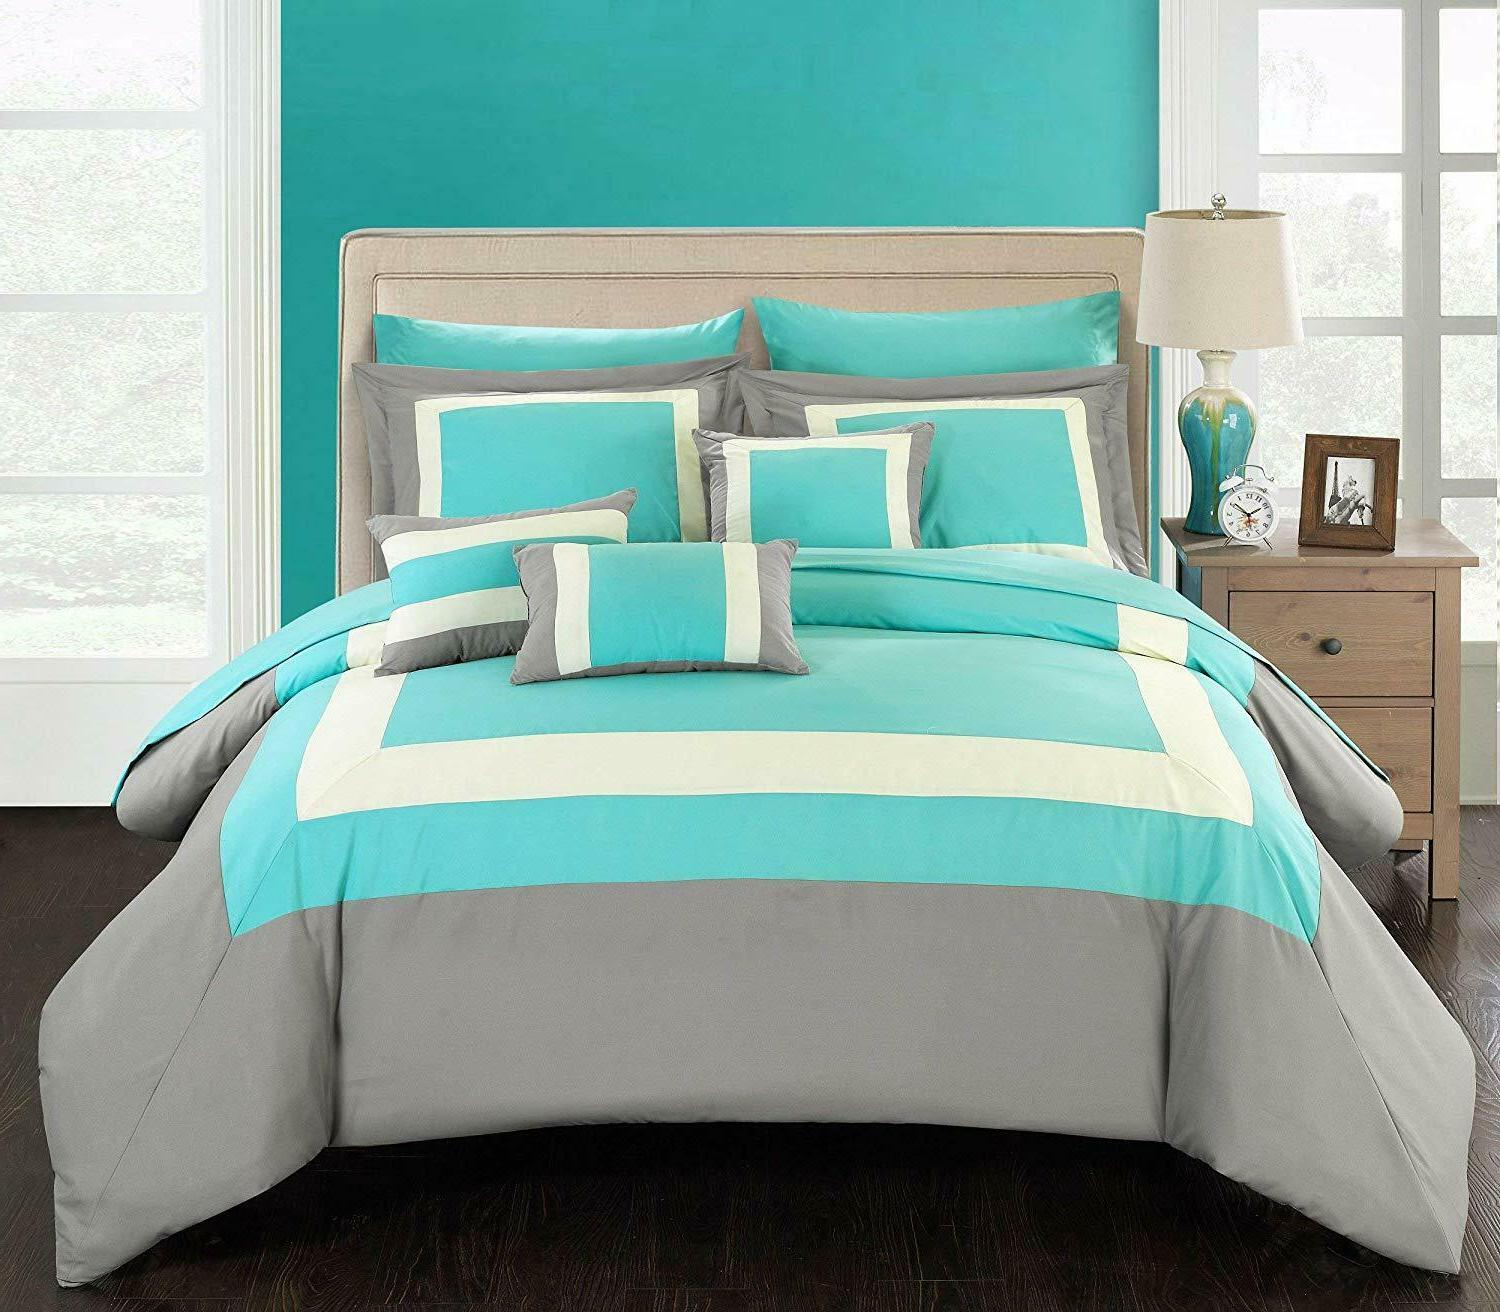 Chic Home 10 Piece Complete Block Bed Turquoise 100% Microfiber